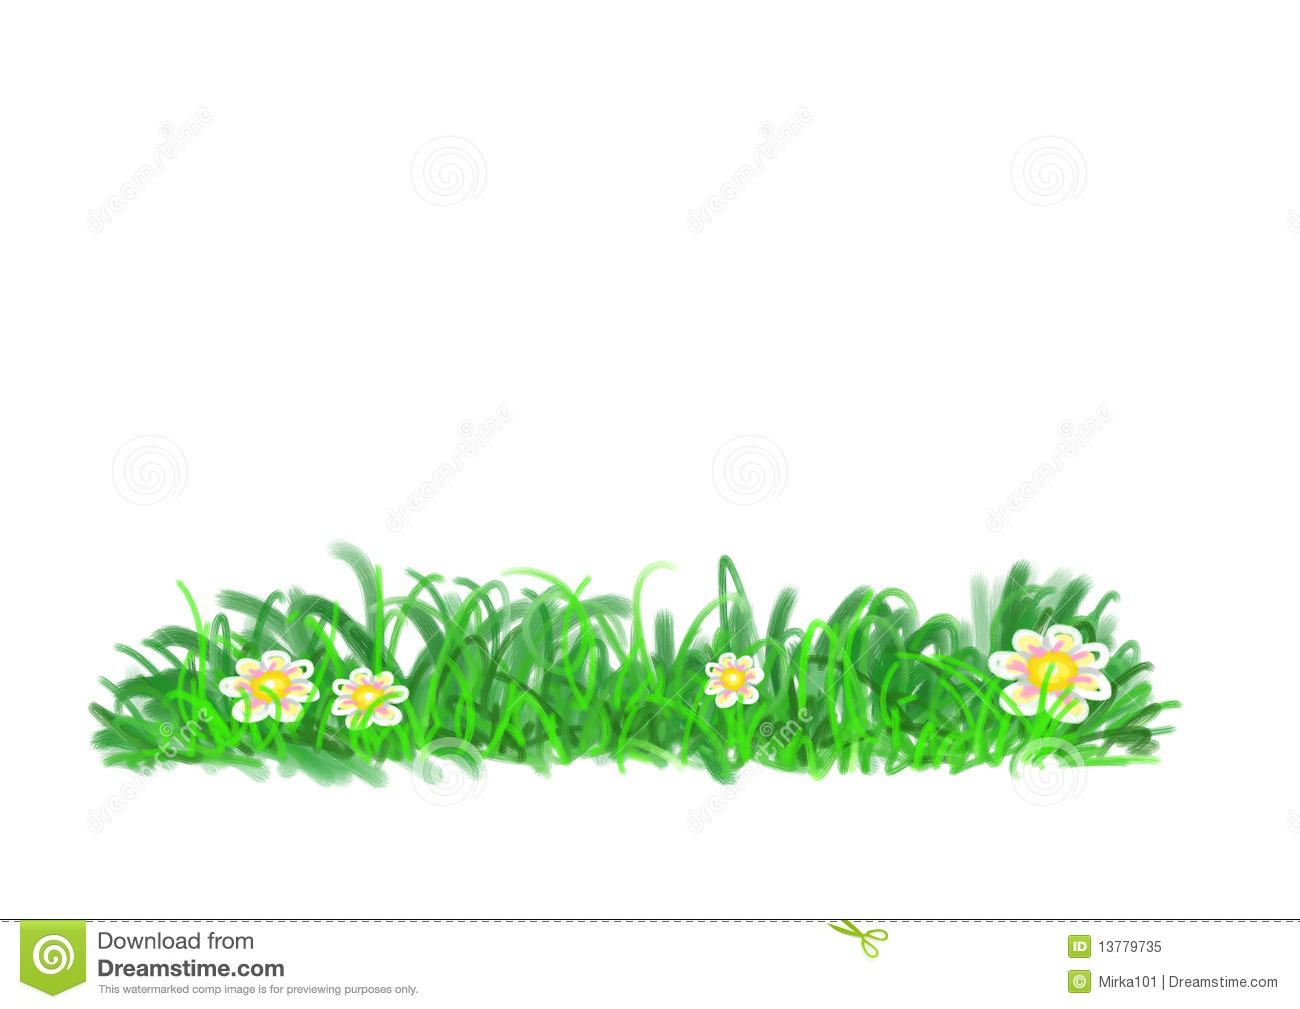 Grass flower royalty free stock photo image 13779735 for Grass flower